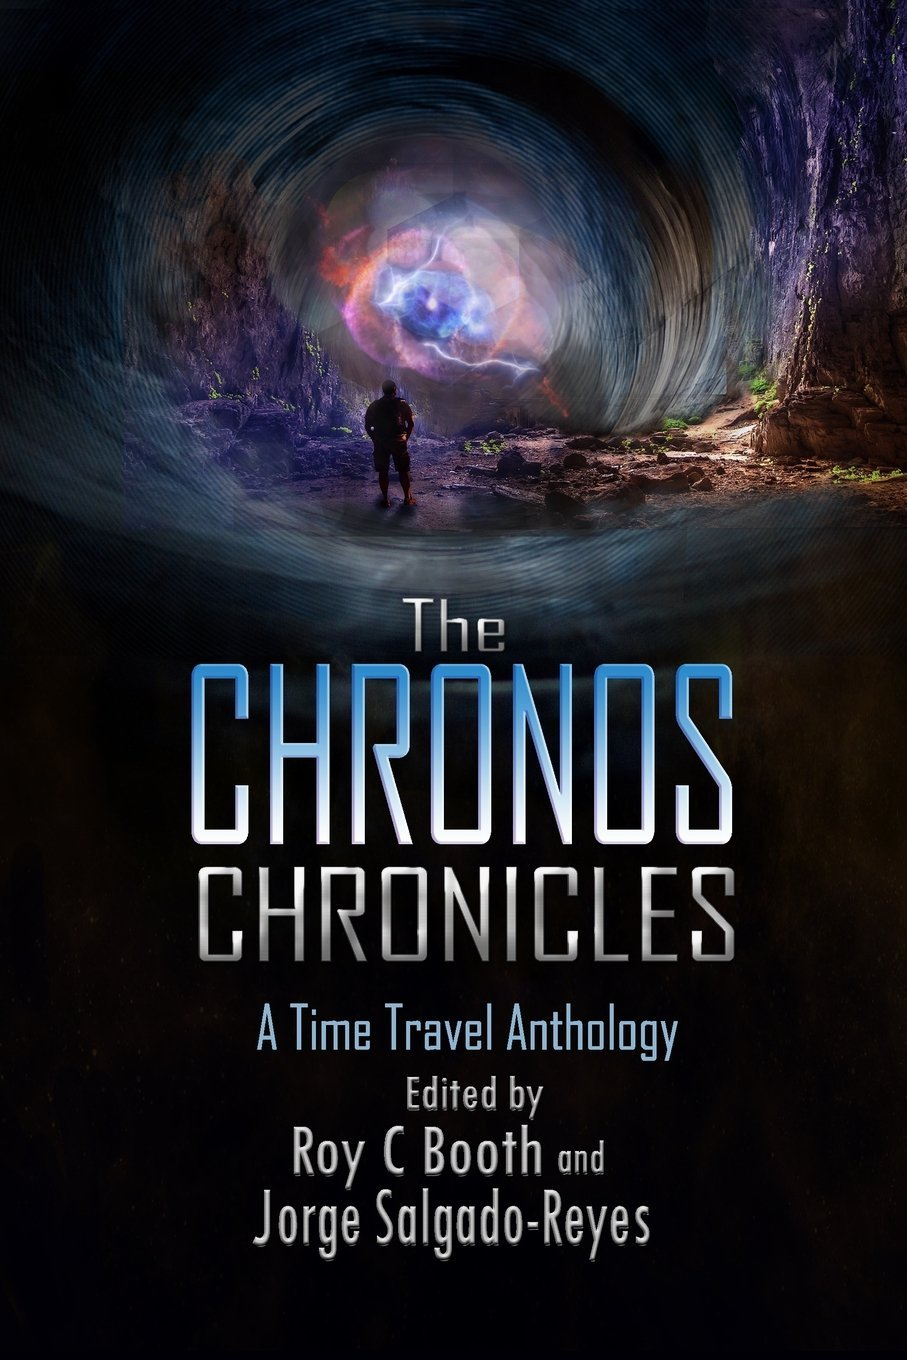 Buy The Chronos Chronicles: A Time Travel Anthology Book